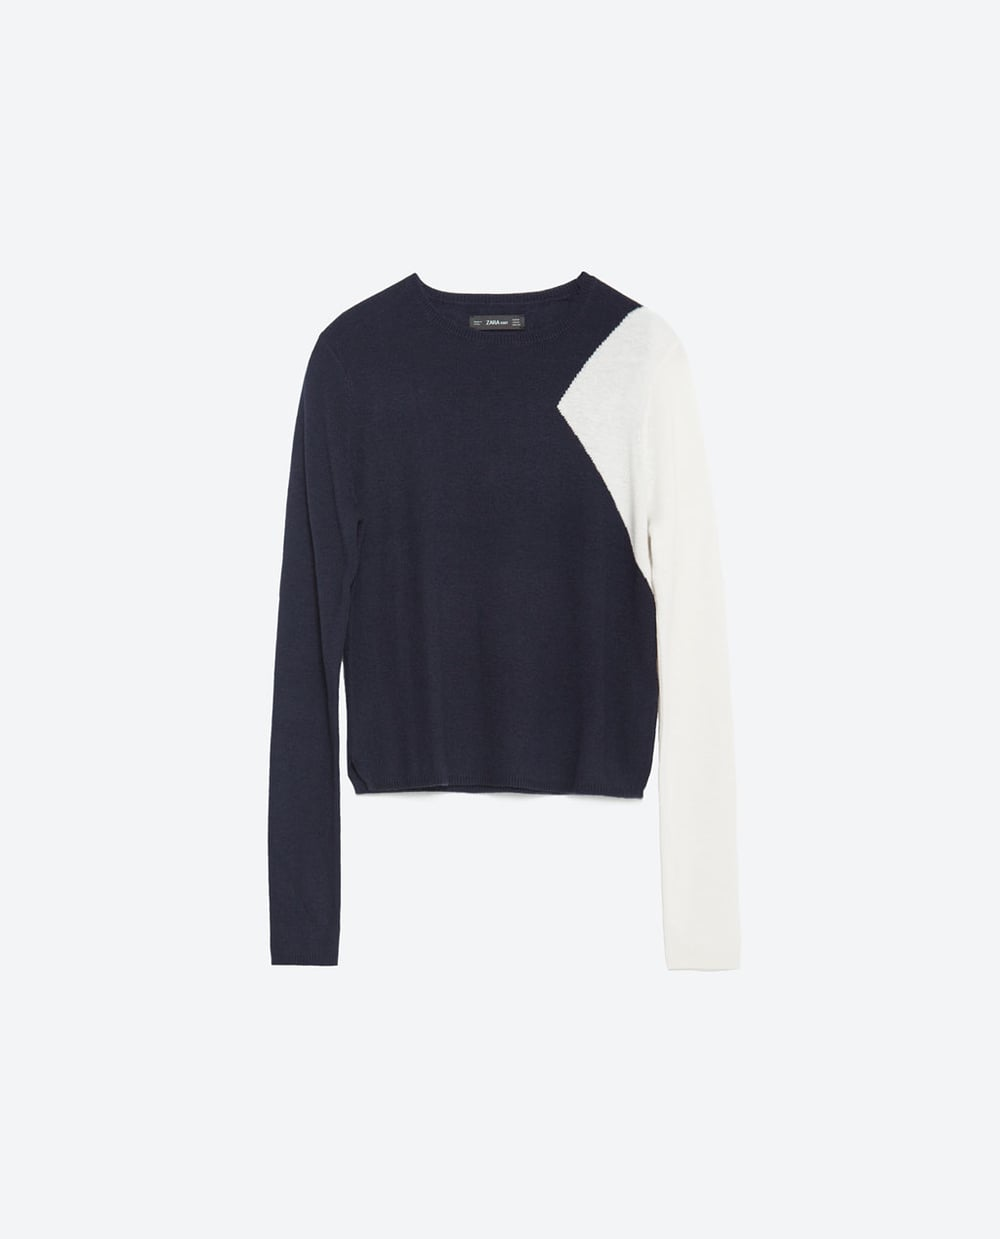 Cropped Two Tone Sweater. Zara. Was: $49 Now: $29.